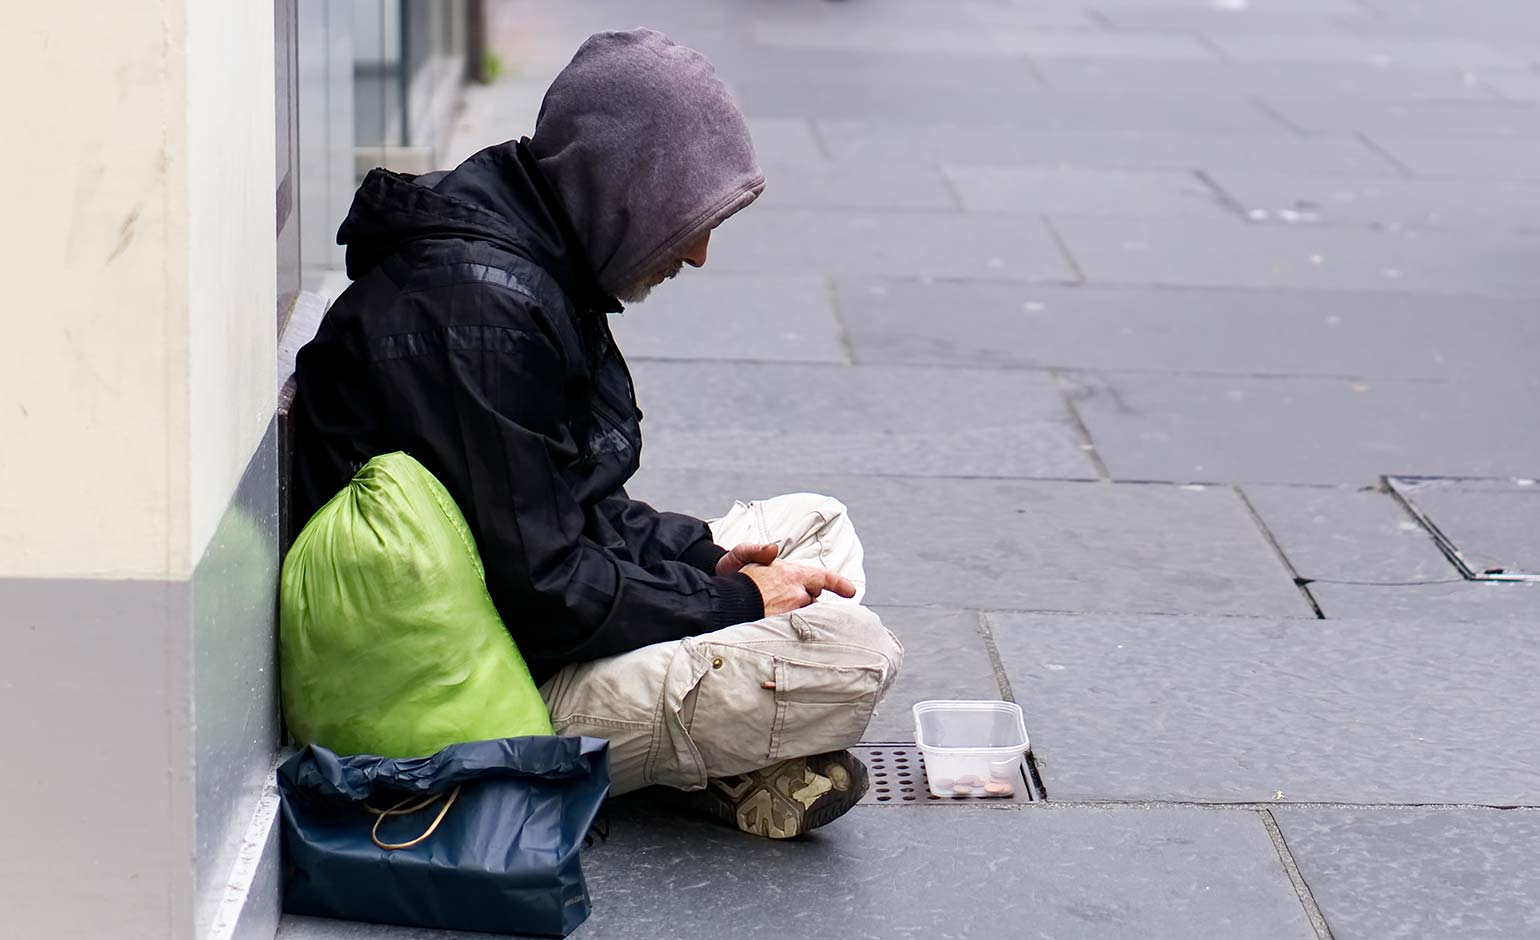 """Inconceivable"" that rough sleepers will be sent back to streets after lockdown"